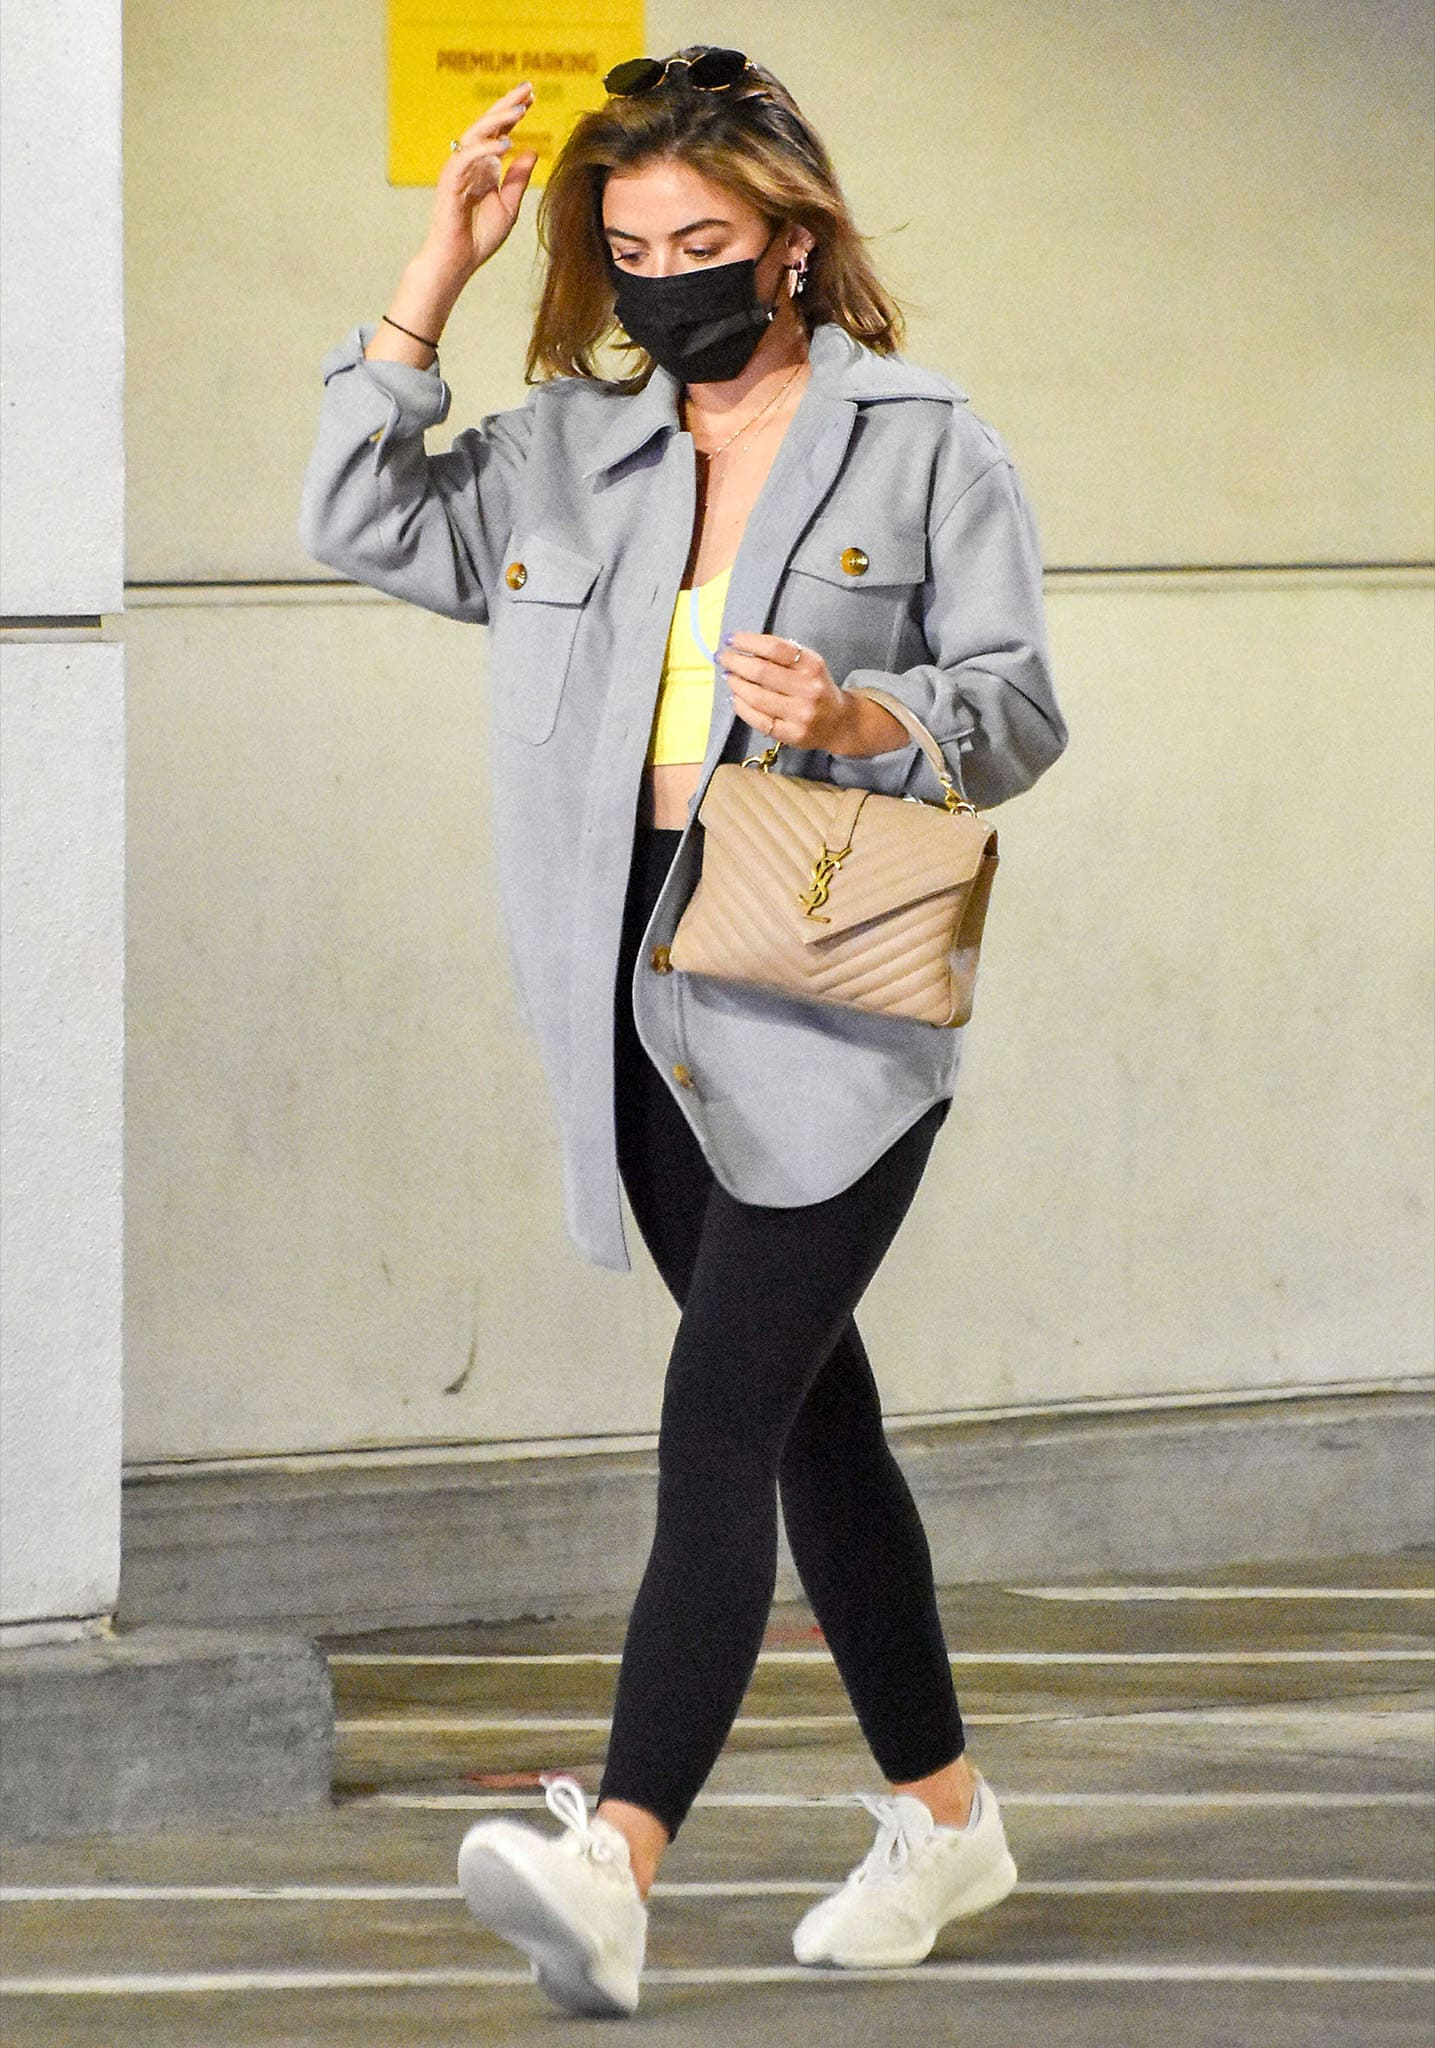 Lucy Hale shops at Target in Fabletics x Madelain sports bra, leggings, and Good American shacket on March 9, 2021